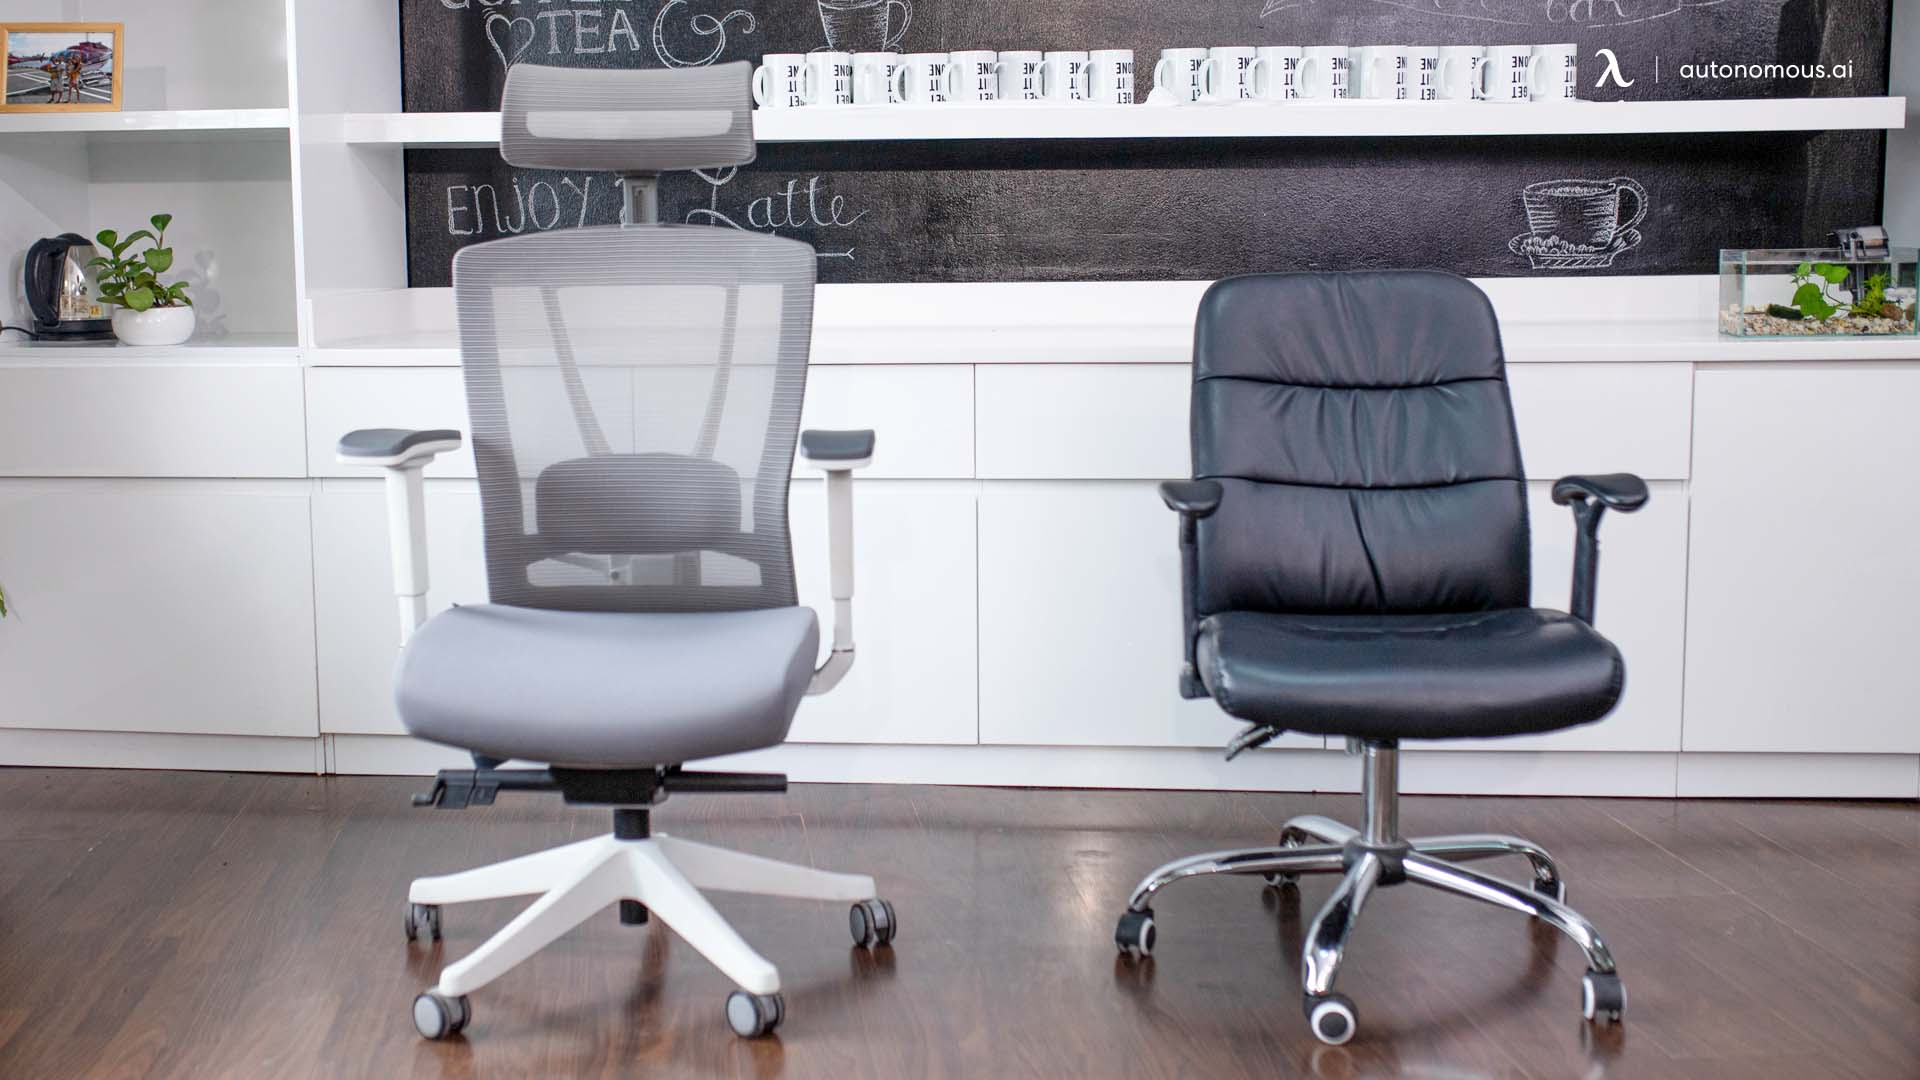 What Makes an Ergonomic Office Chair?